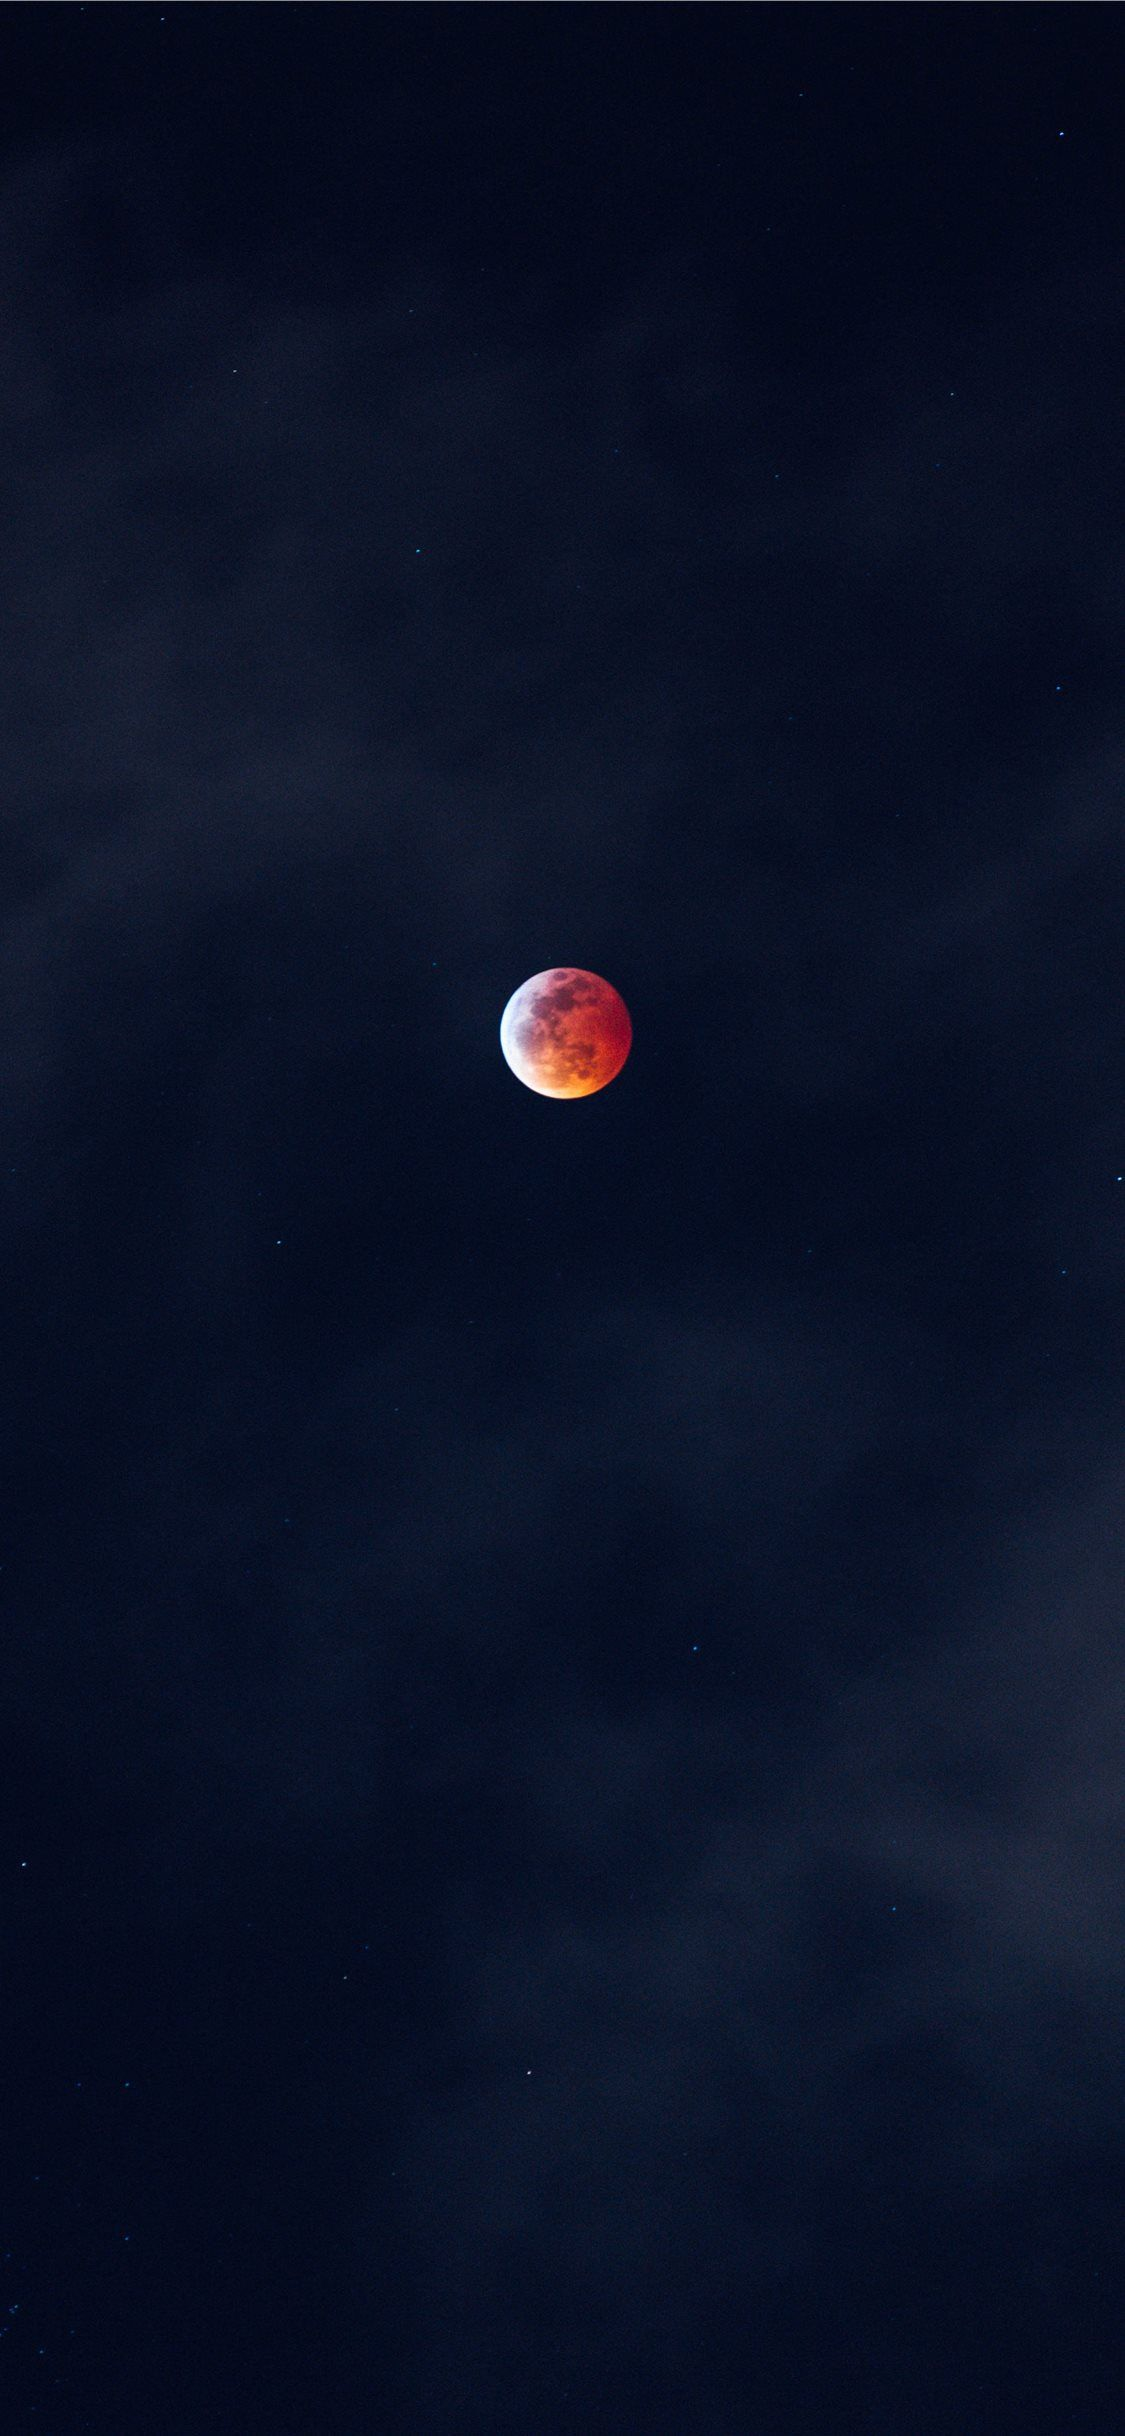 Free download the red and white full moon wallpaper ,beaty